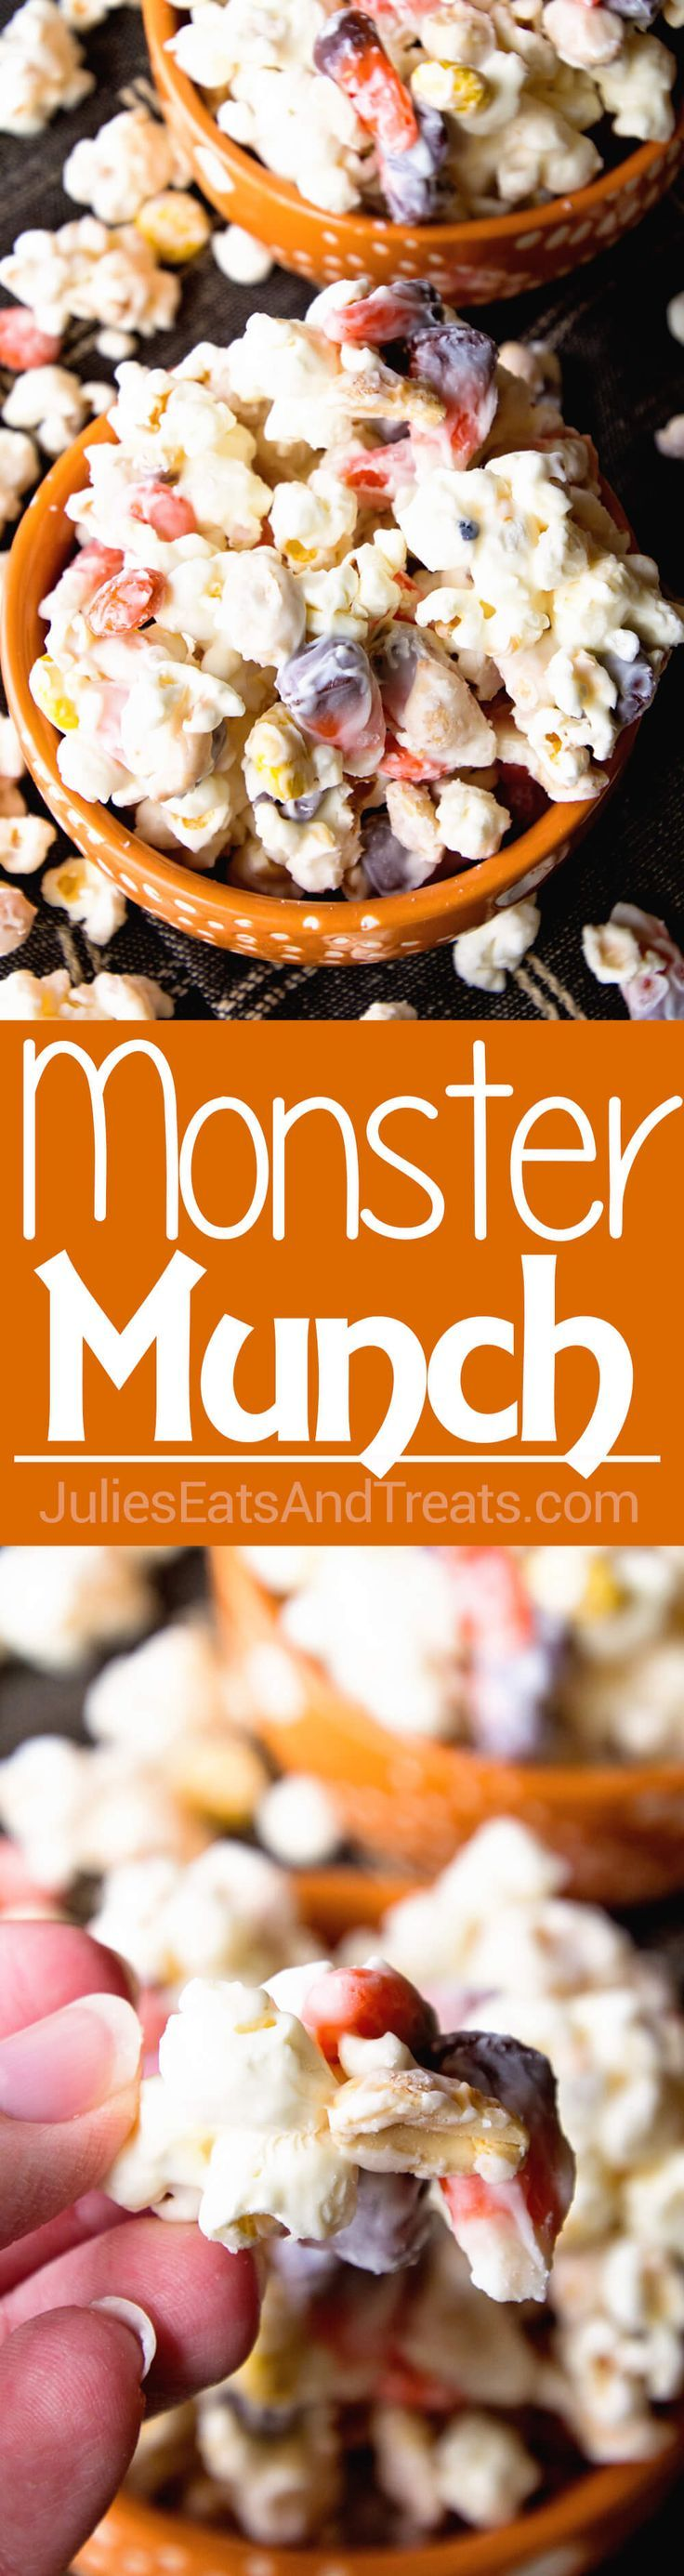 Monster Munch Halloween Snack Mix ~ Sweet & Salty Snack Mix Loaded with Popcorn, Candy Corn, Peanuts & Reese's Pieces! via @julieseats